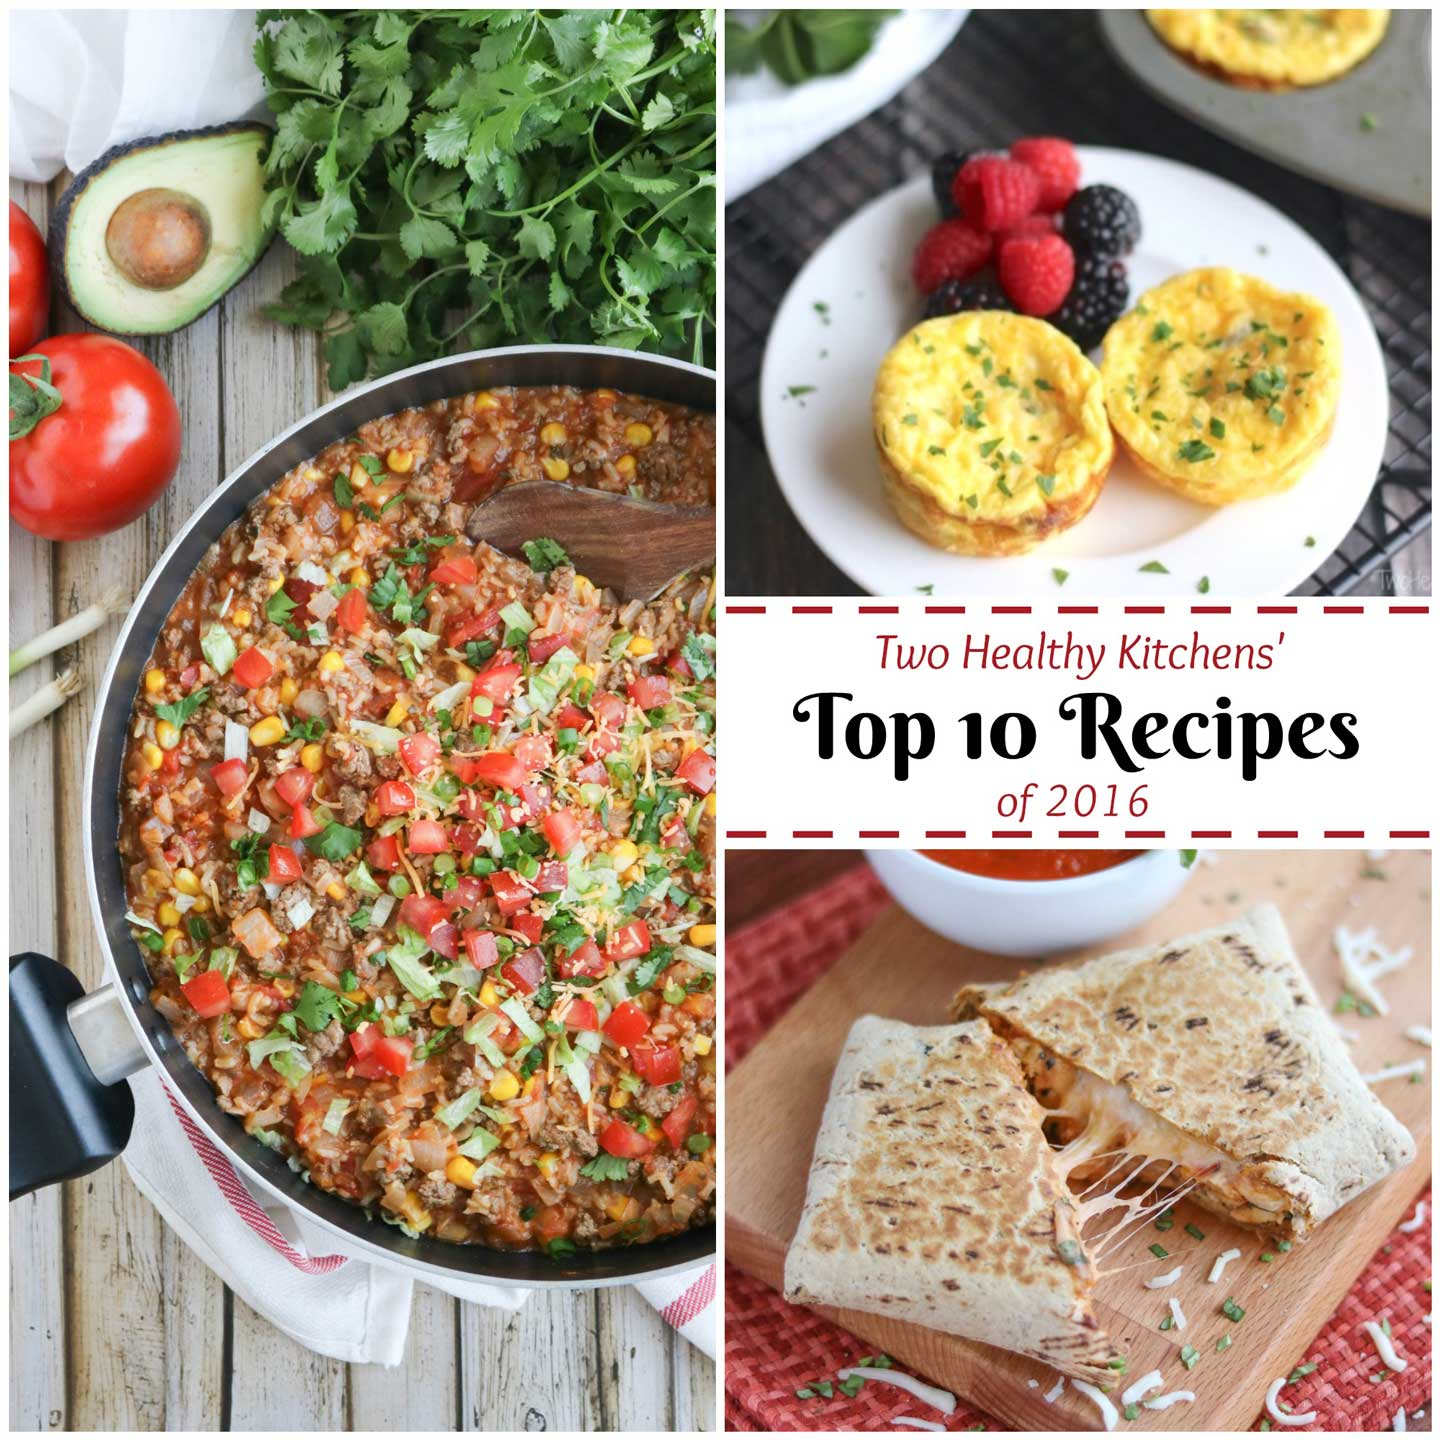 Easy Healthy Recipes Your Whole Family Will Love These Favorite Recipes Are Absolute Must